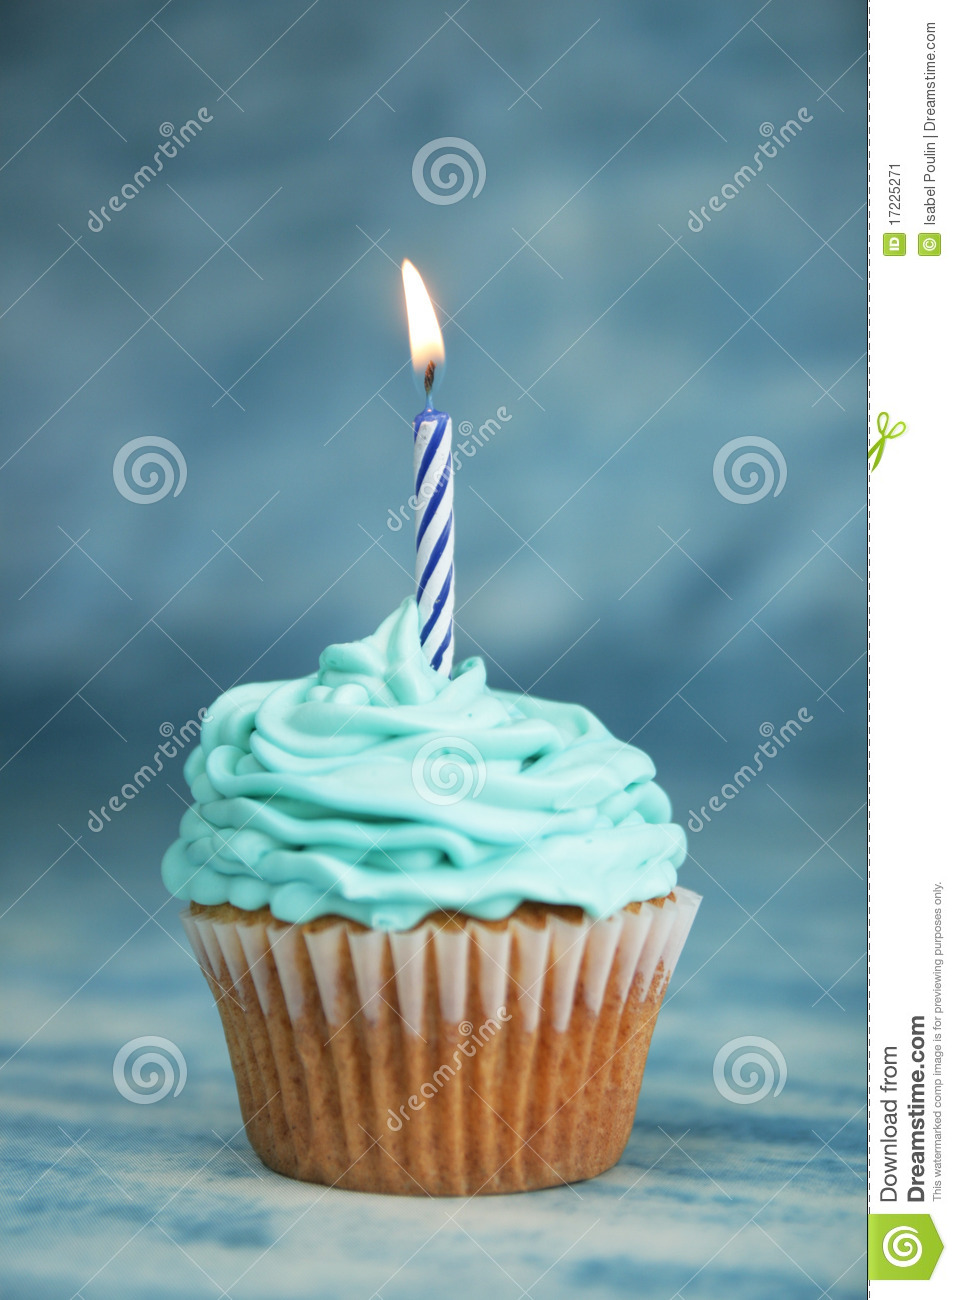 birthday cake with candles animation 7 on birthday cake with candles animation